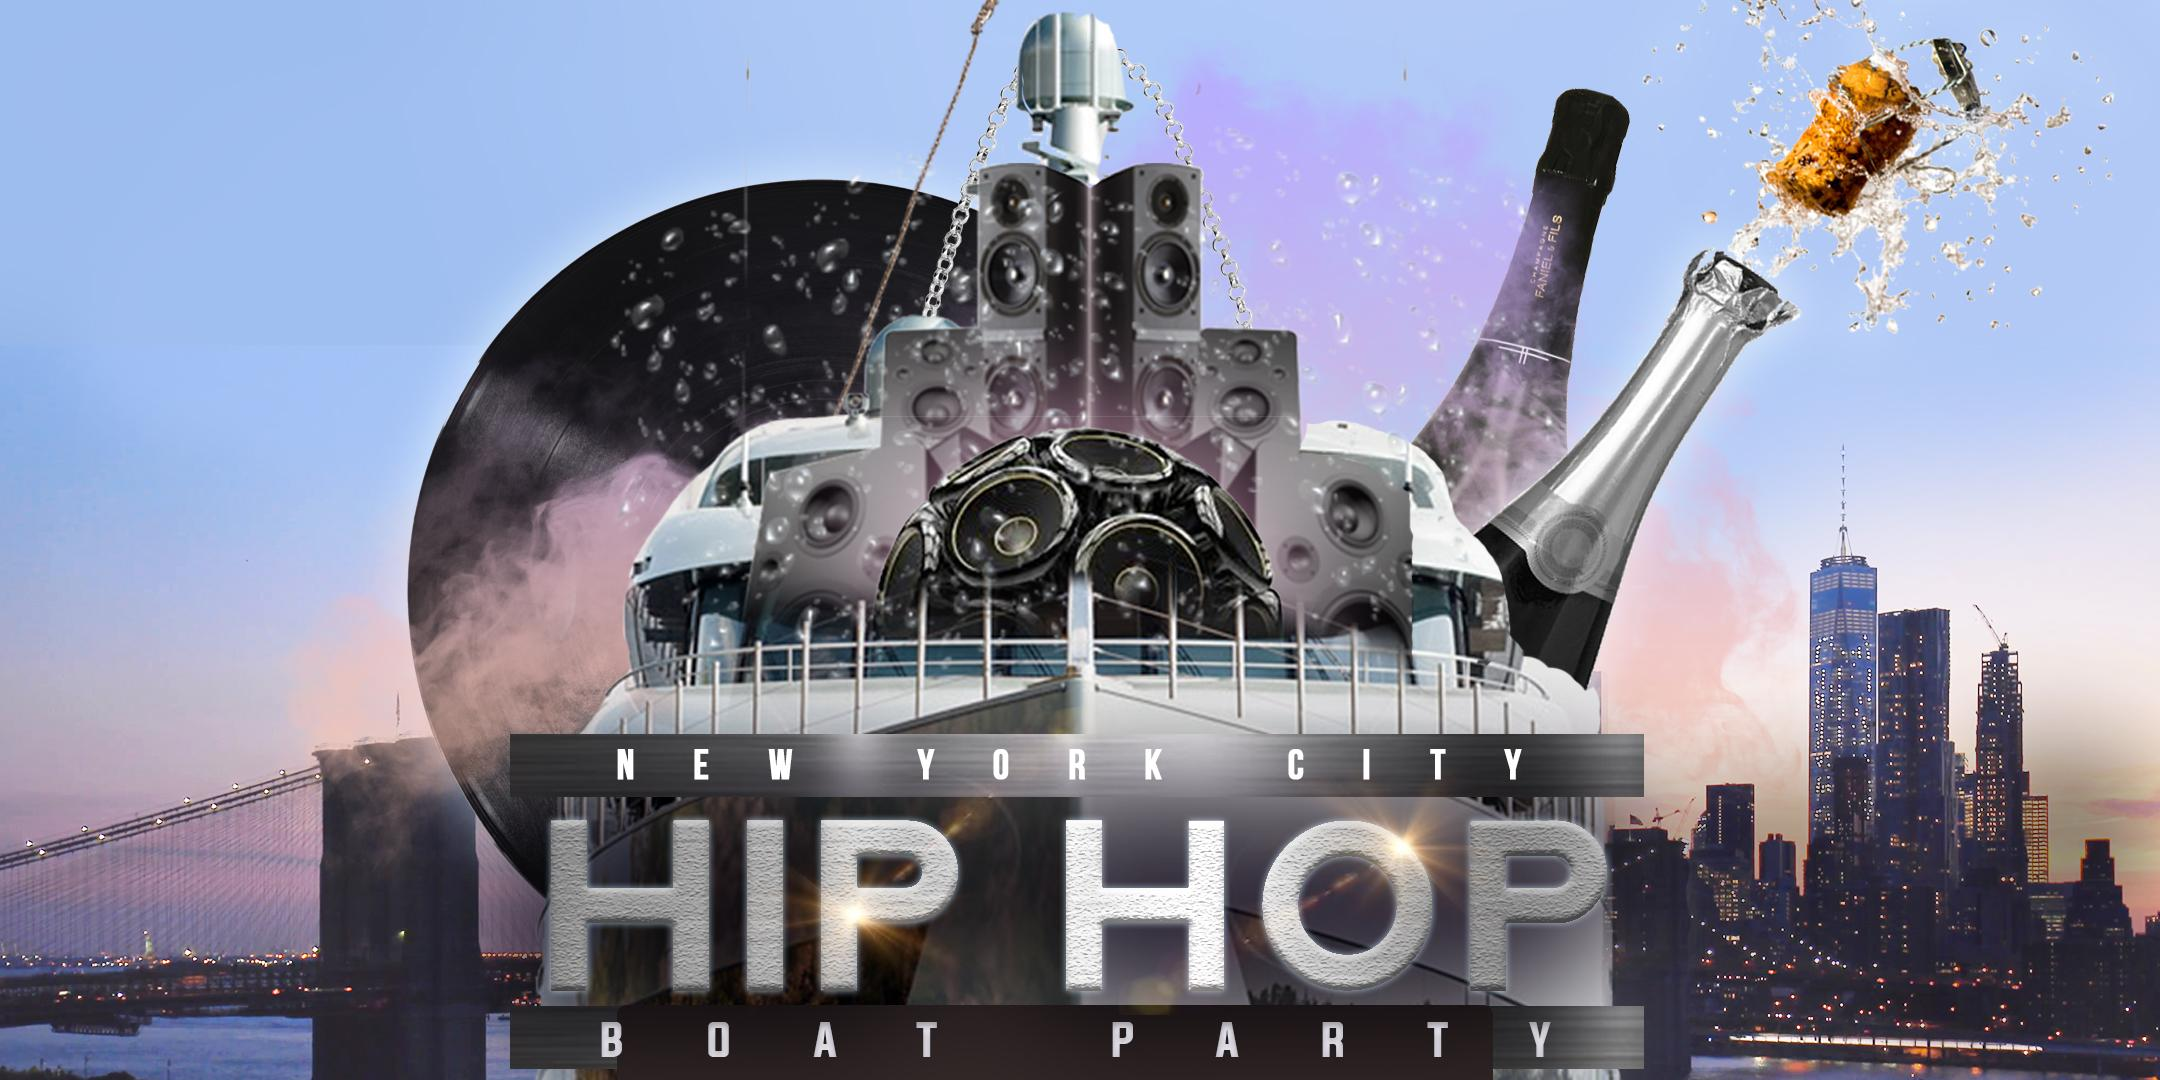 The #1 HIP HOP & R&B Boat Party NYC Yacht Cruise